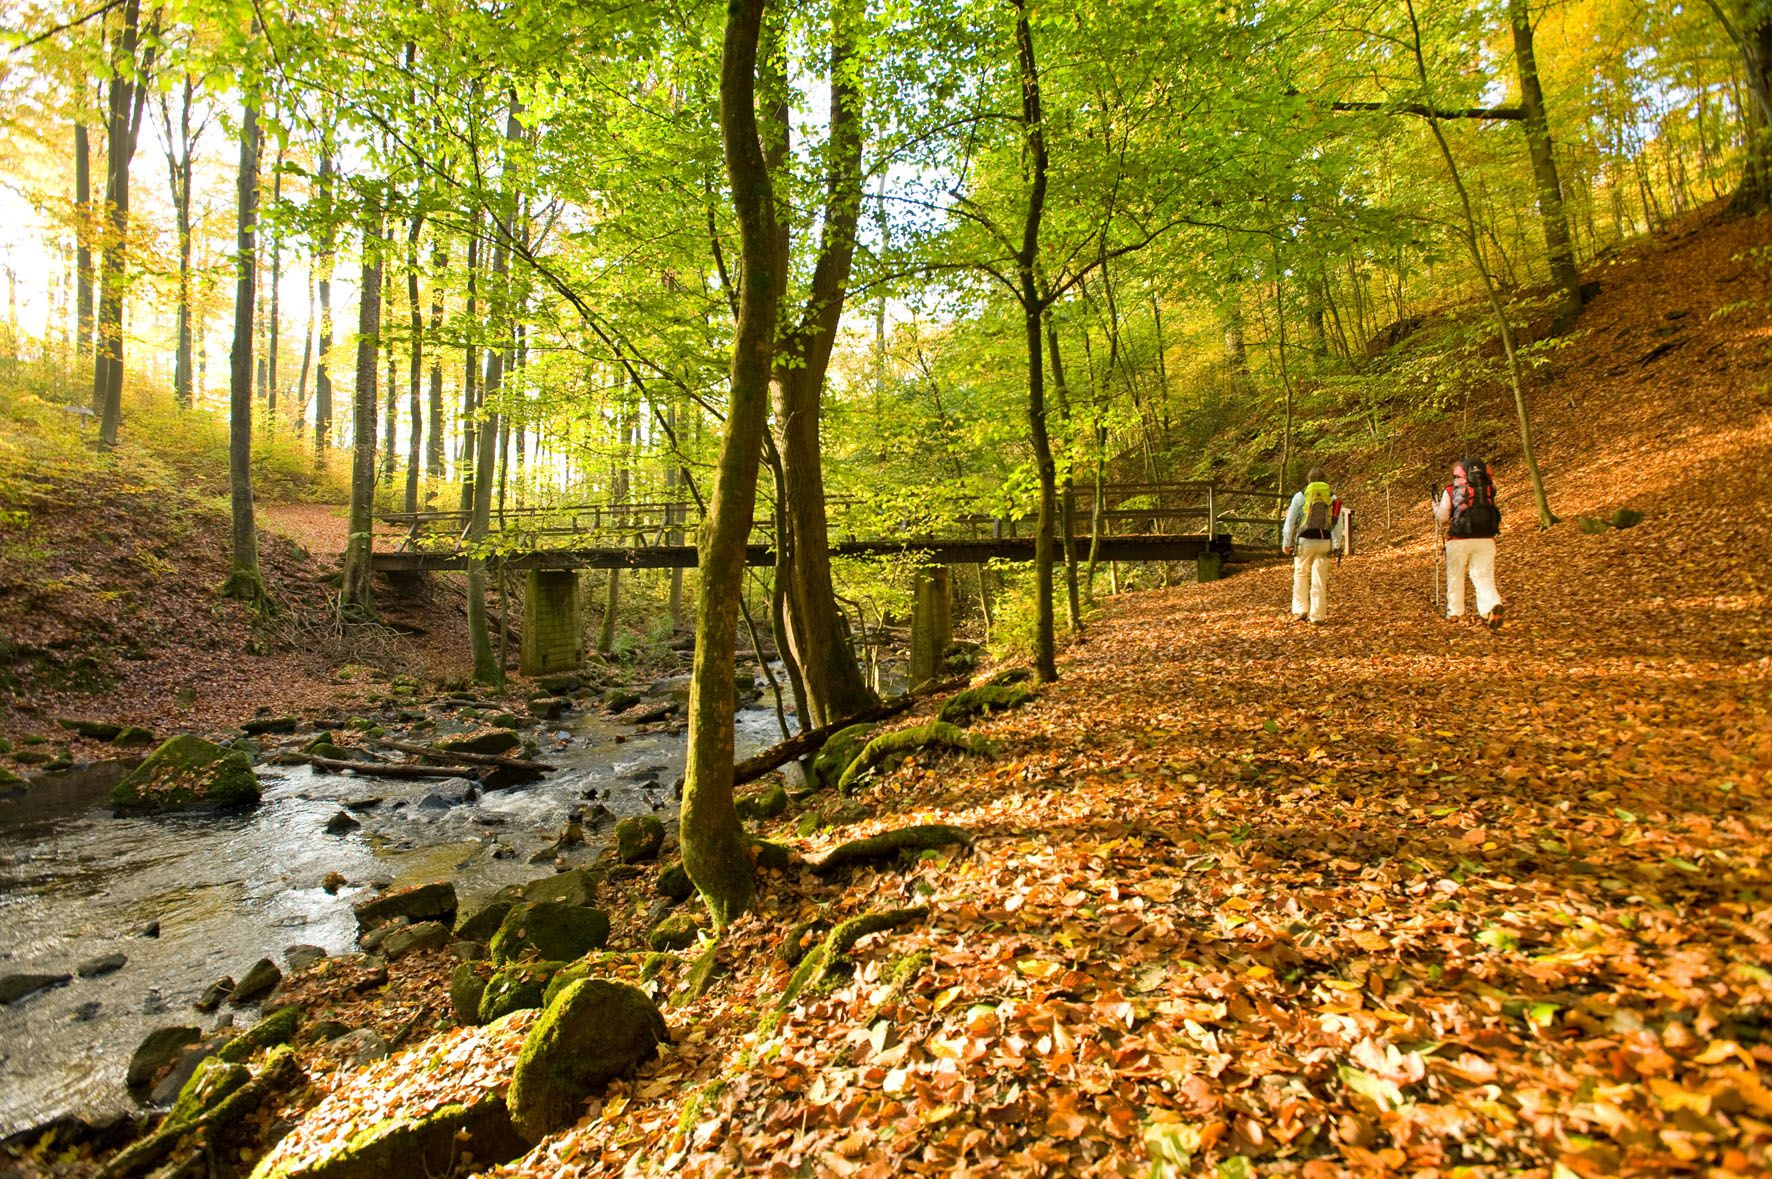 Hiking along the Holzbach Gorge, Westerwald